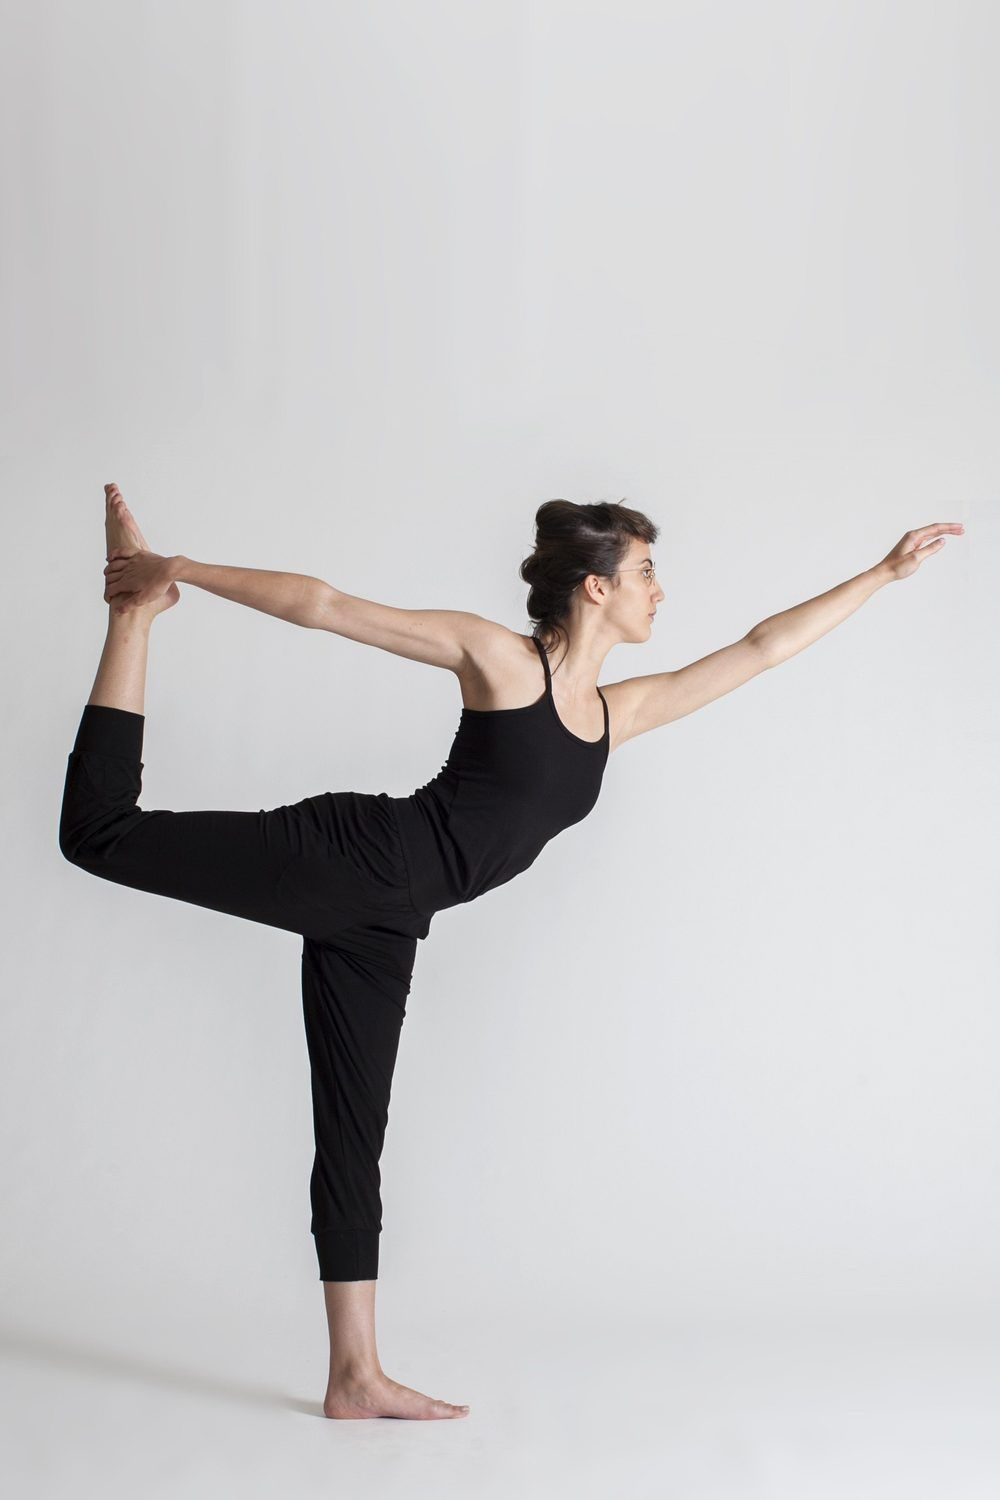 items relating to yoga - Google Search #Google #items # ...